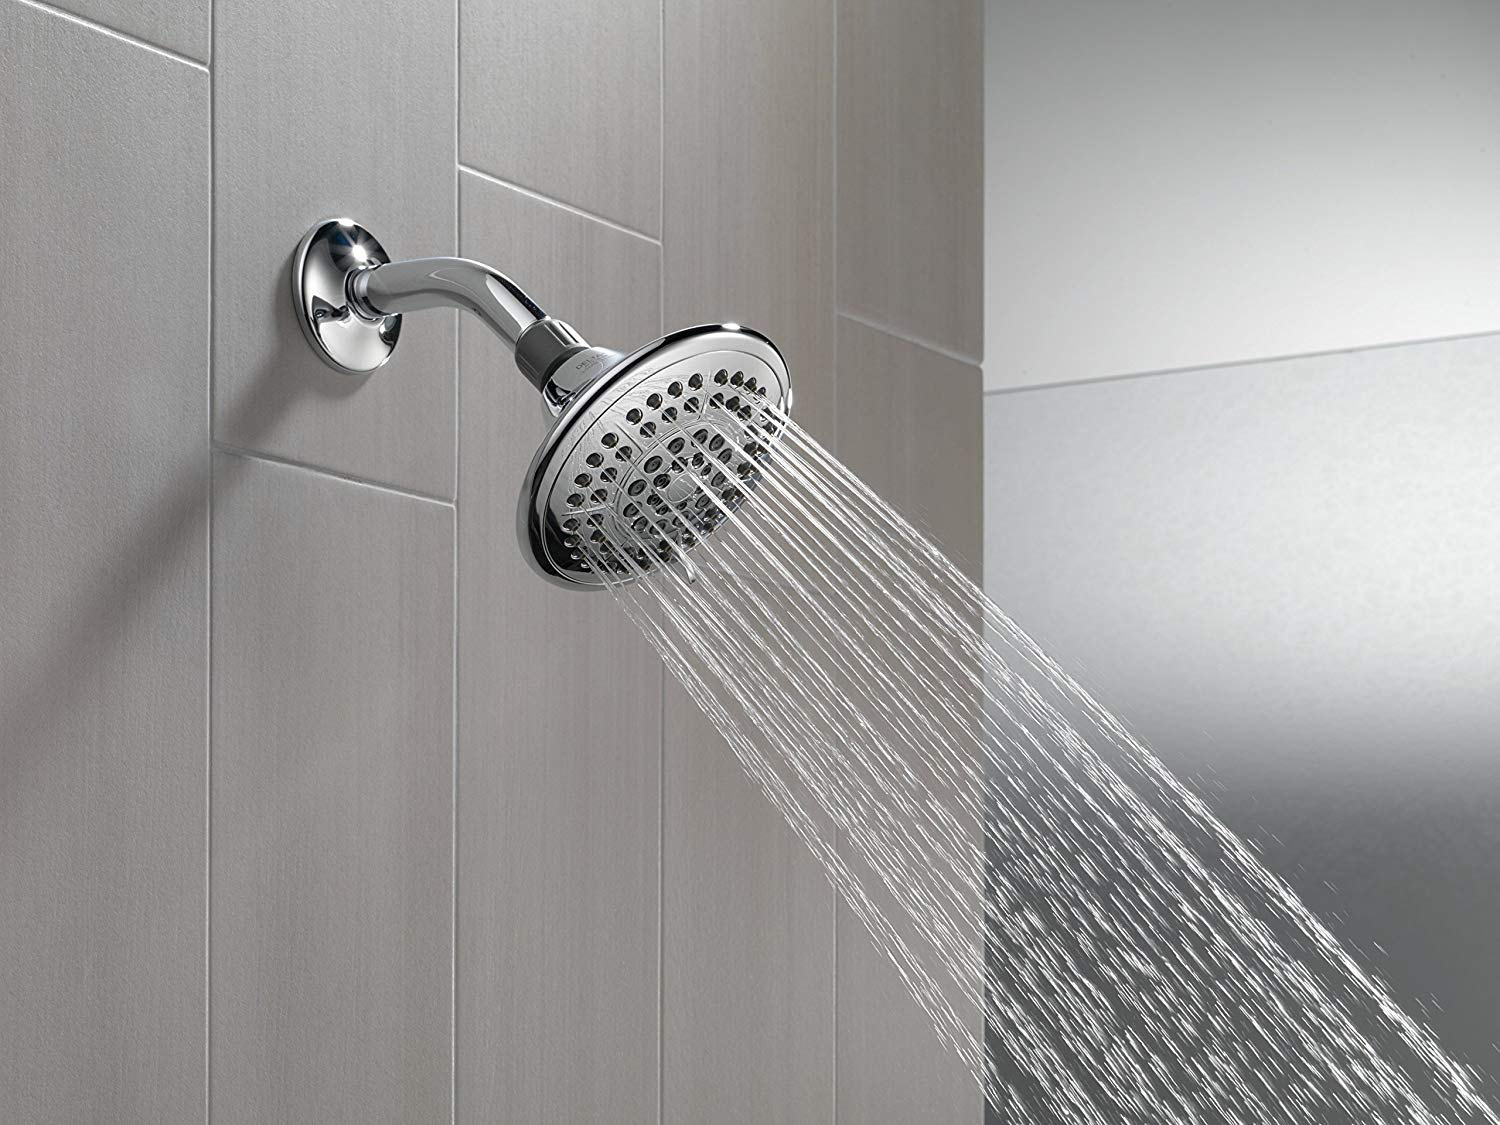 emarketing247: Top 10 Best Buy Shower Head Comparison ...